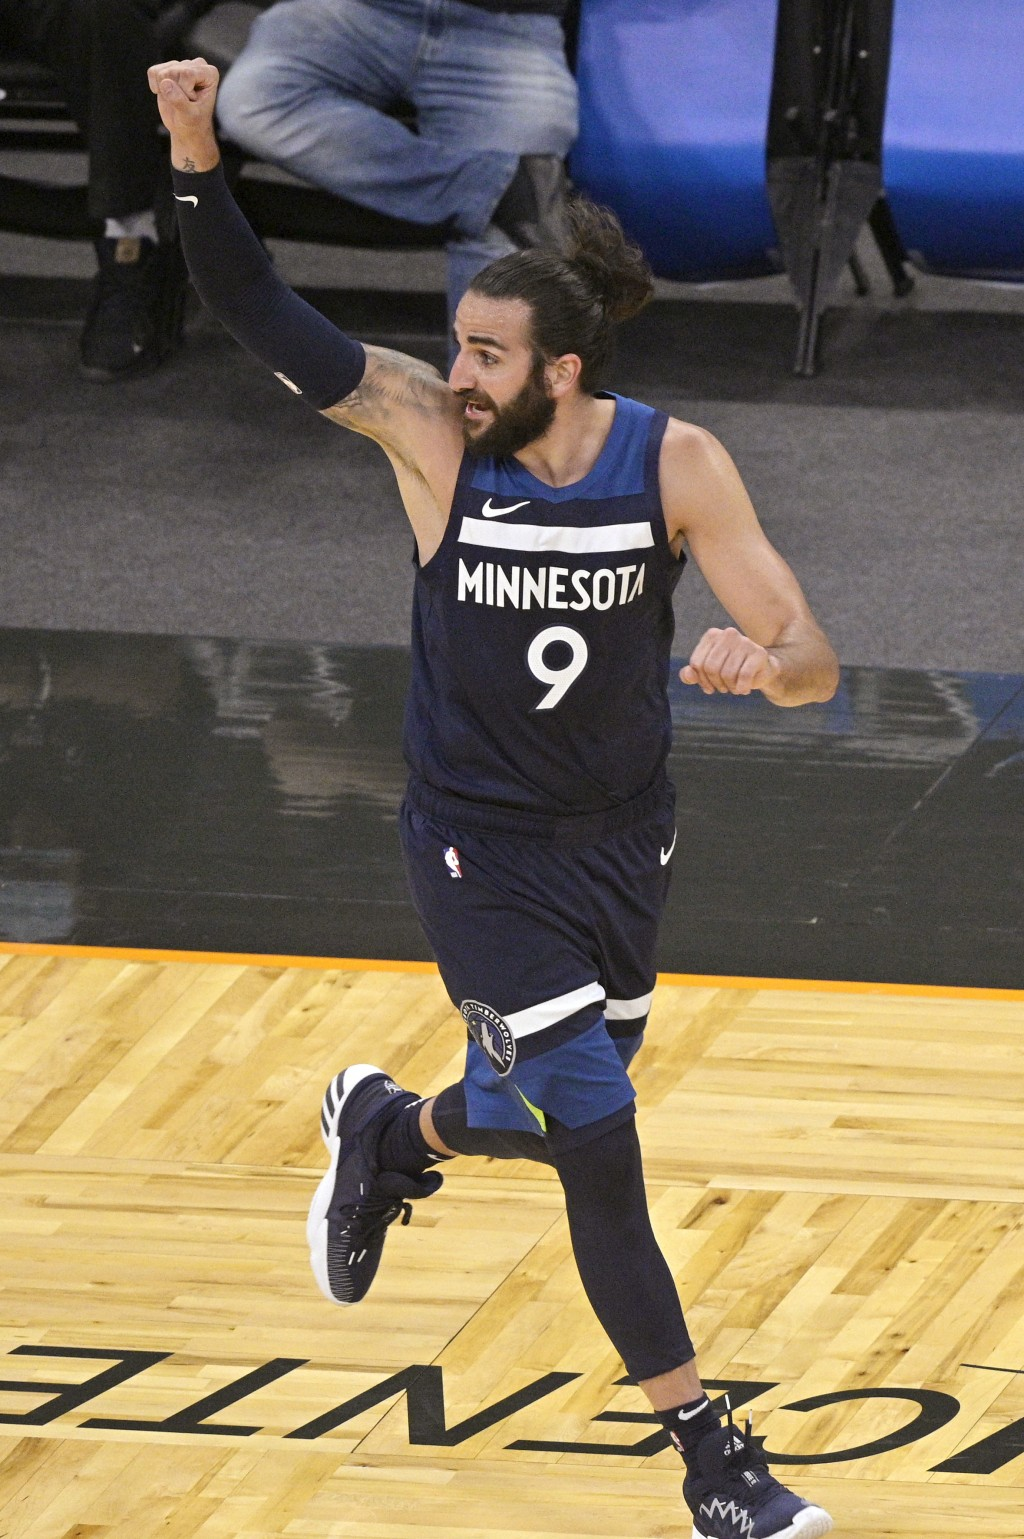 Minnesota Timberwolves guard Ricky Rubio reacts after scoring a 3-point basket during the second half of the team's NBA basketball game against the Or...